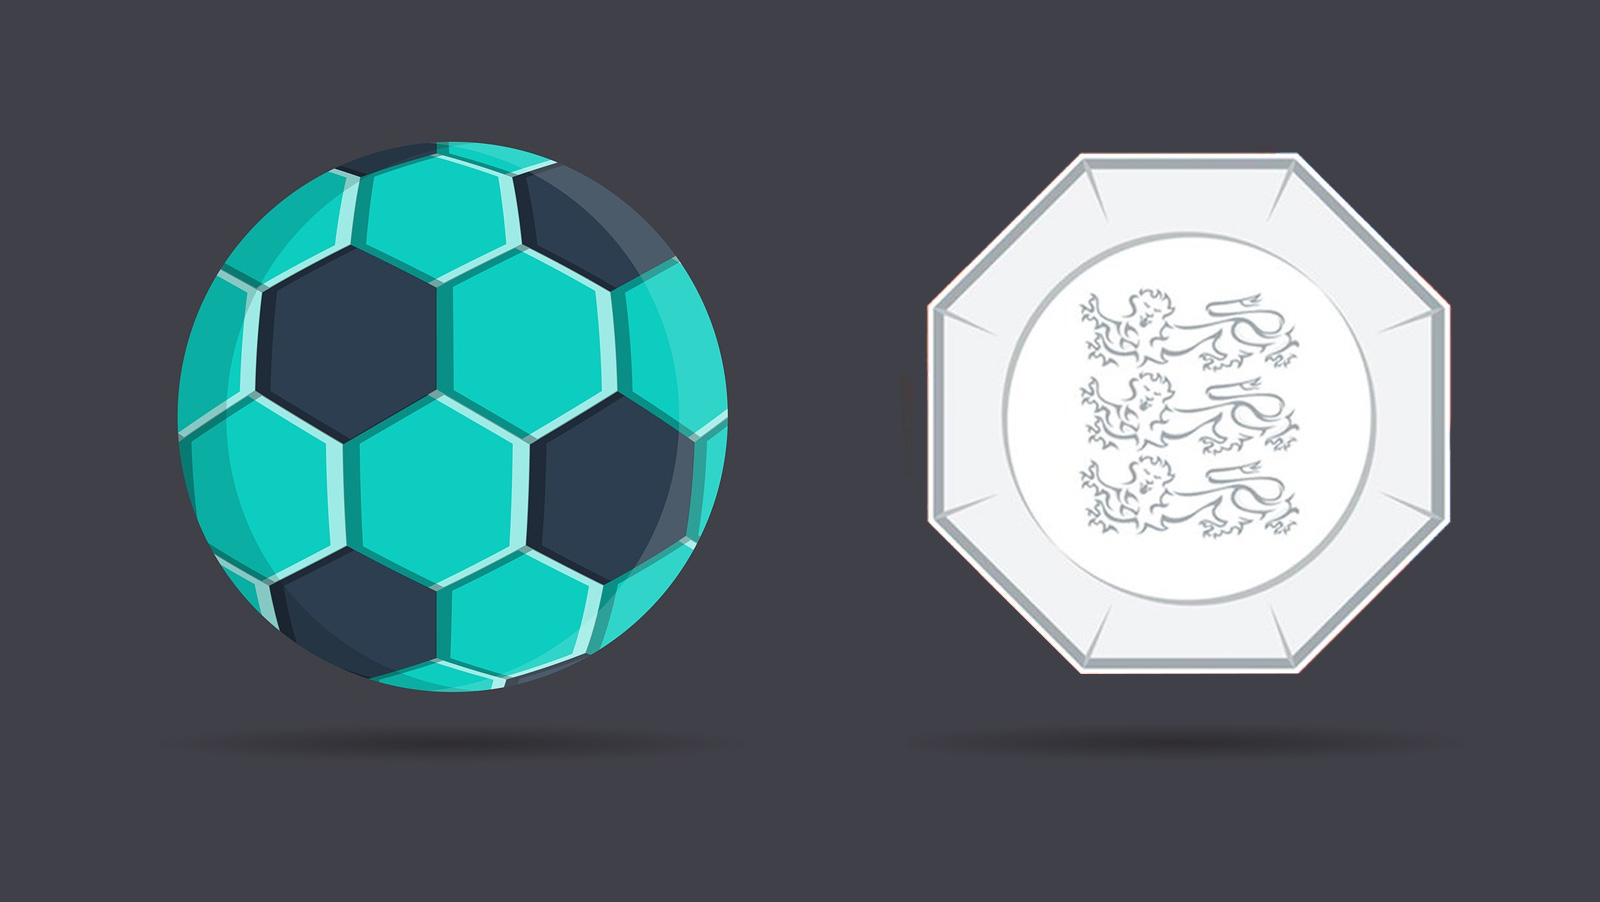 fa-community-shield-why-dont-we-cancel-it-then